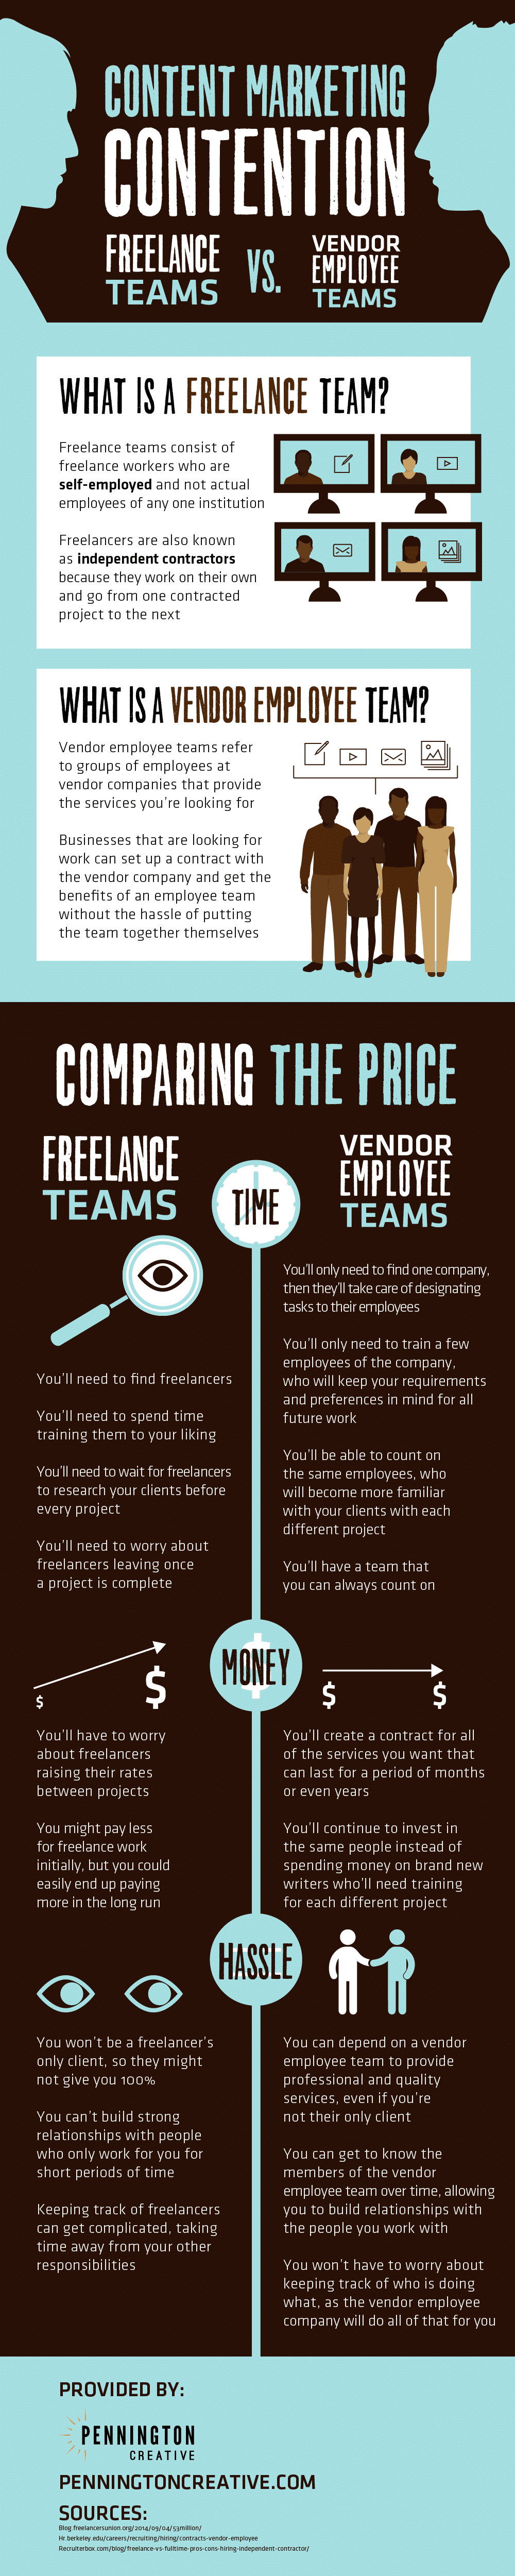 Infographic about hiring freelance teams compared to vendor employee teams.